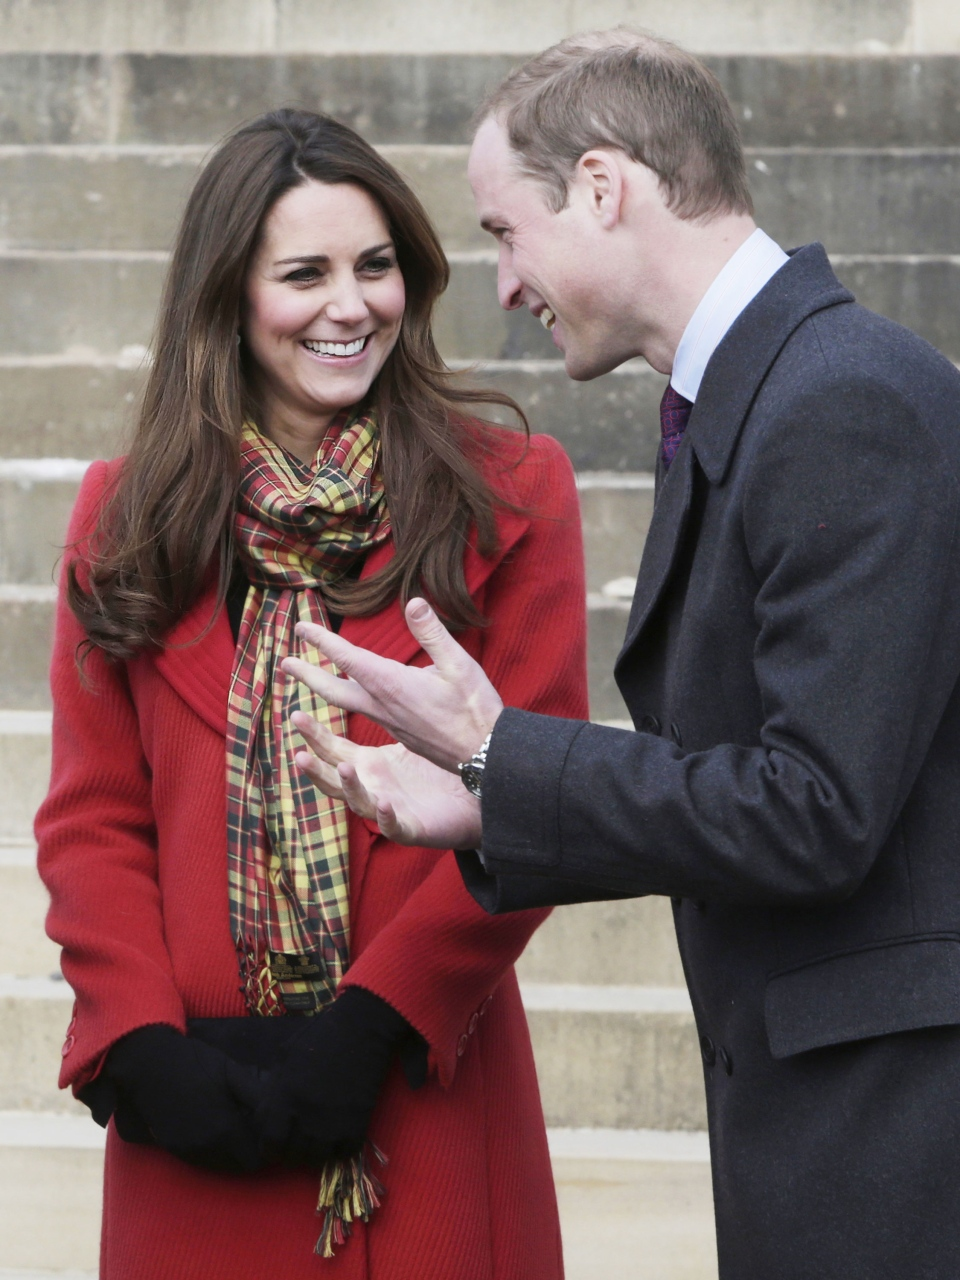 Prince William and Kate Duchess of Cambridge, smile during a visit to Dumfries House in Dumfries, Scotland Friday April 5, 2013. (AP / Danny Lawson)